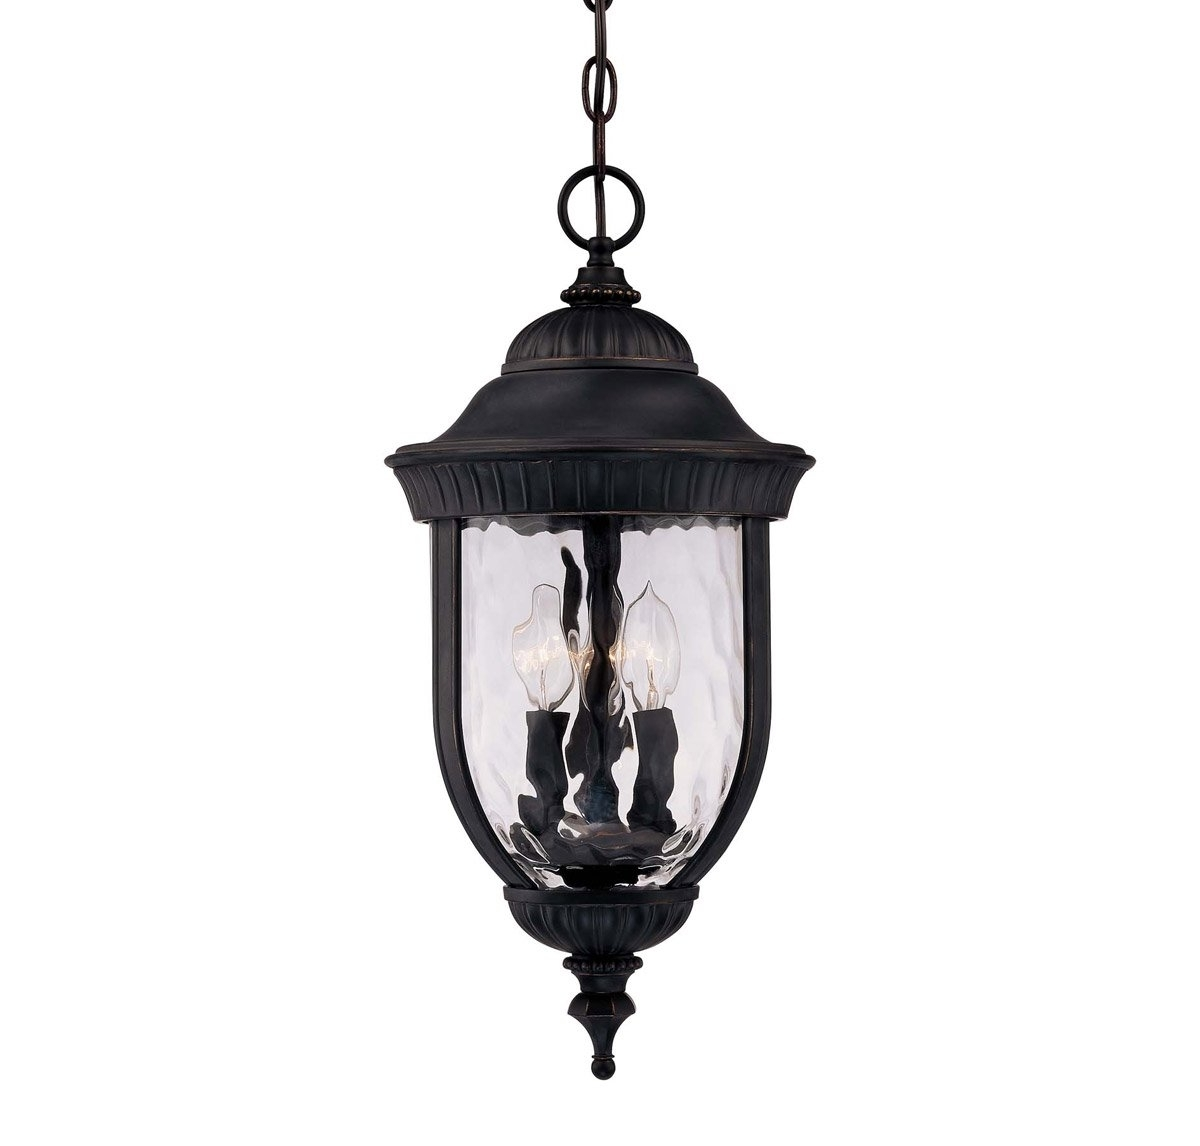 Newest Savoy House Lighting 5 60328 186 Castlemain 3 Light 10 Inch Black Throughout Gold Outdoor Lanterns (Gallery 12 of 20)